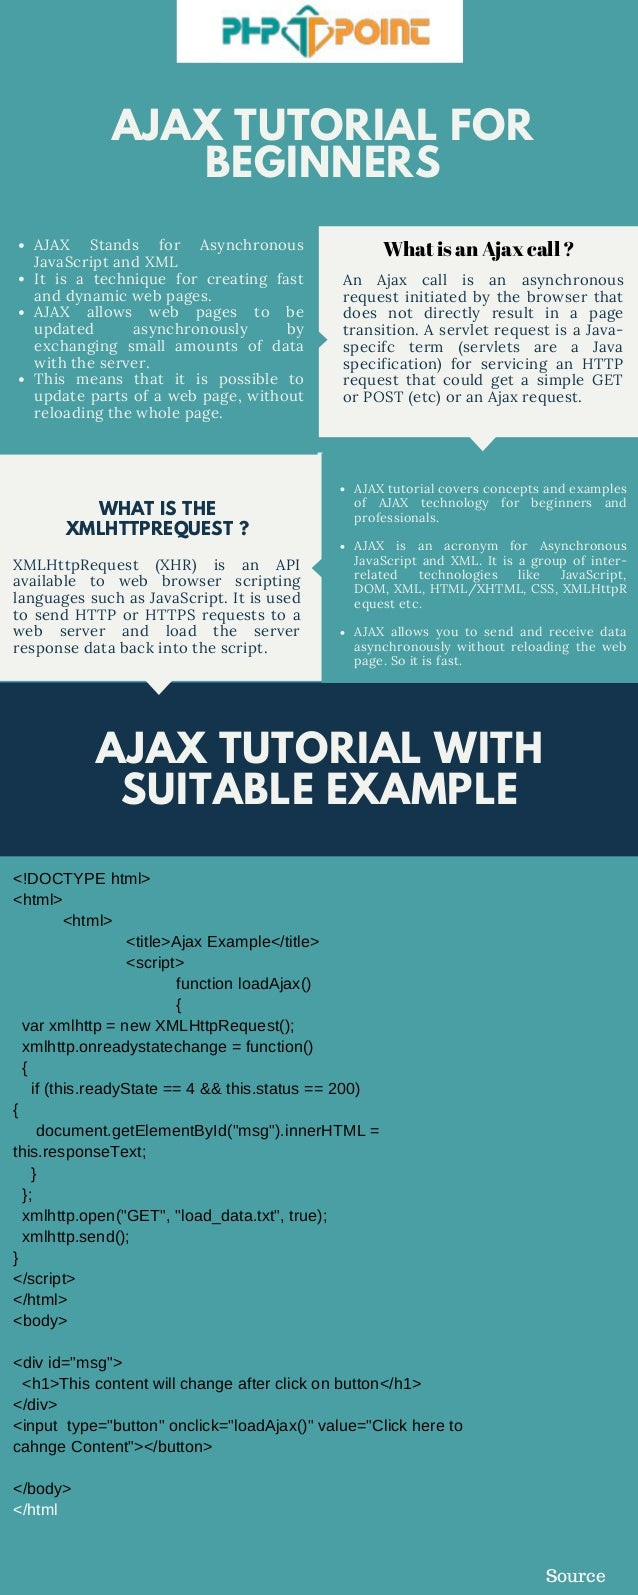 AJAX TUTORIAL FOR BEGINNERS AJAX Stands for Asynchronous JavaScript and XML It is a technique for creating fast and dynami...